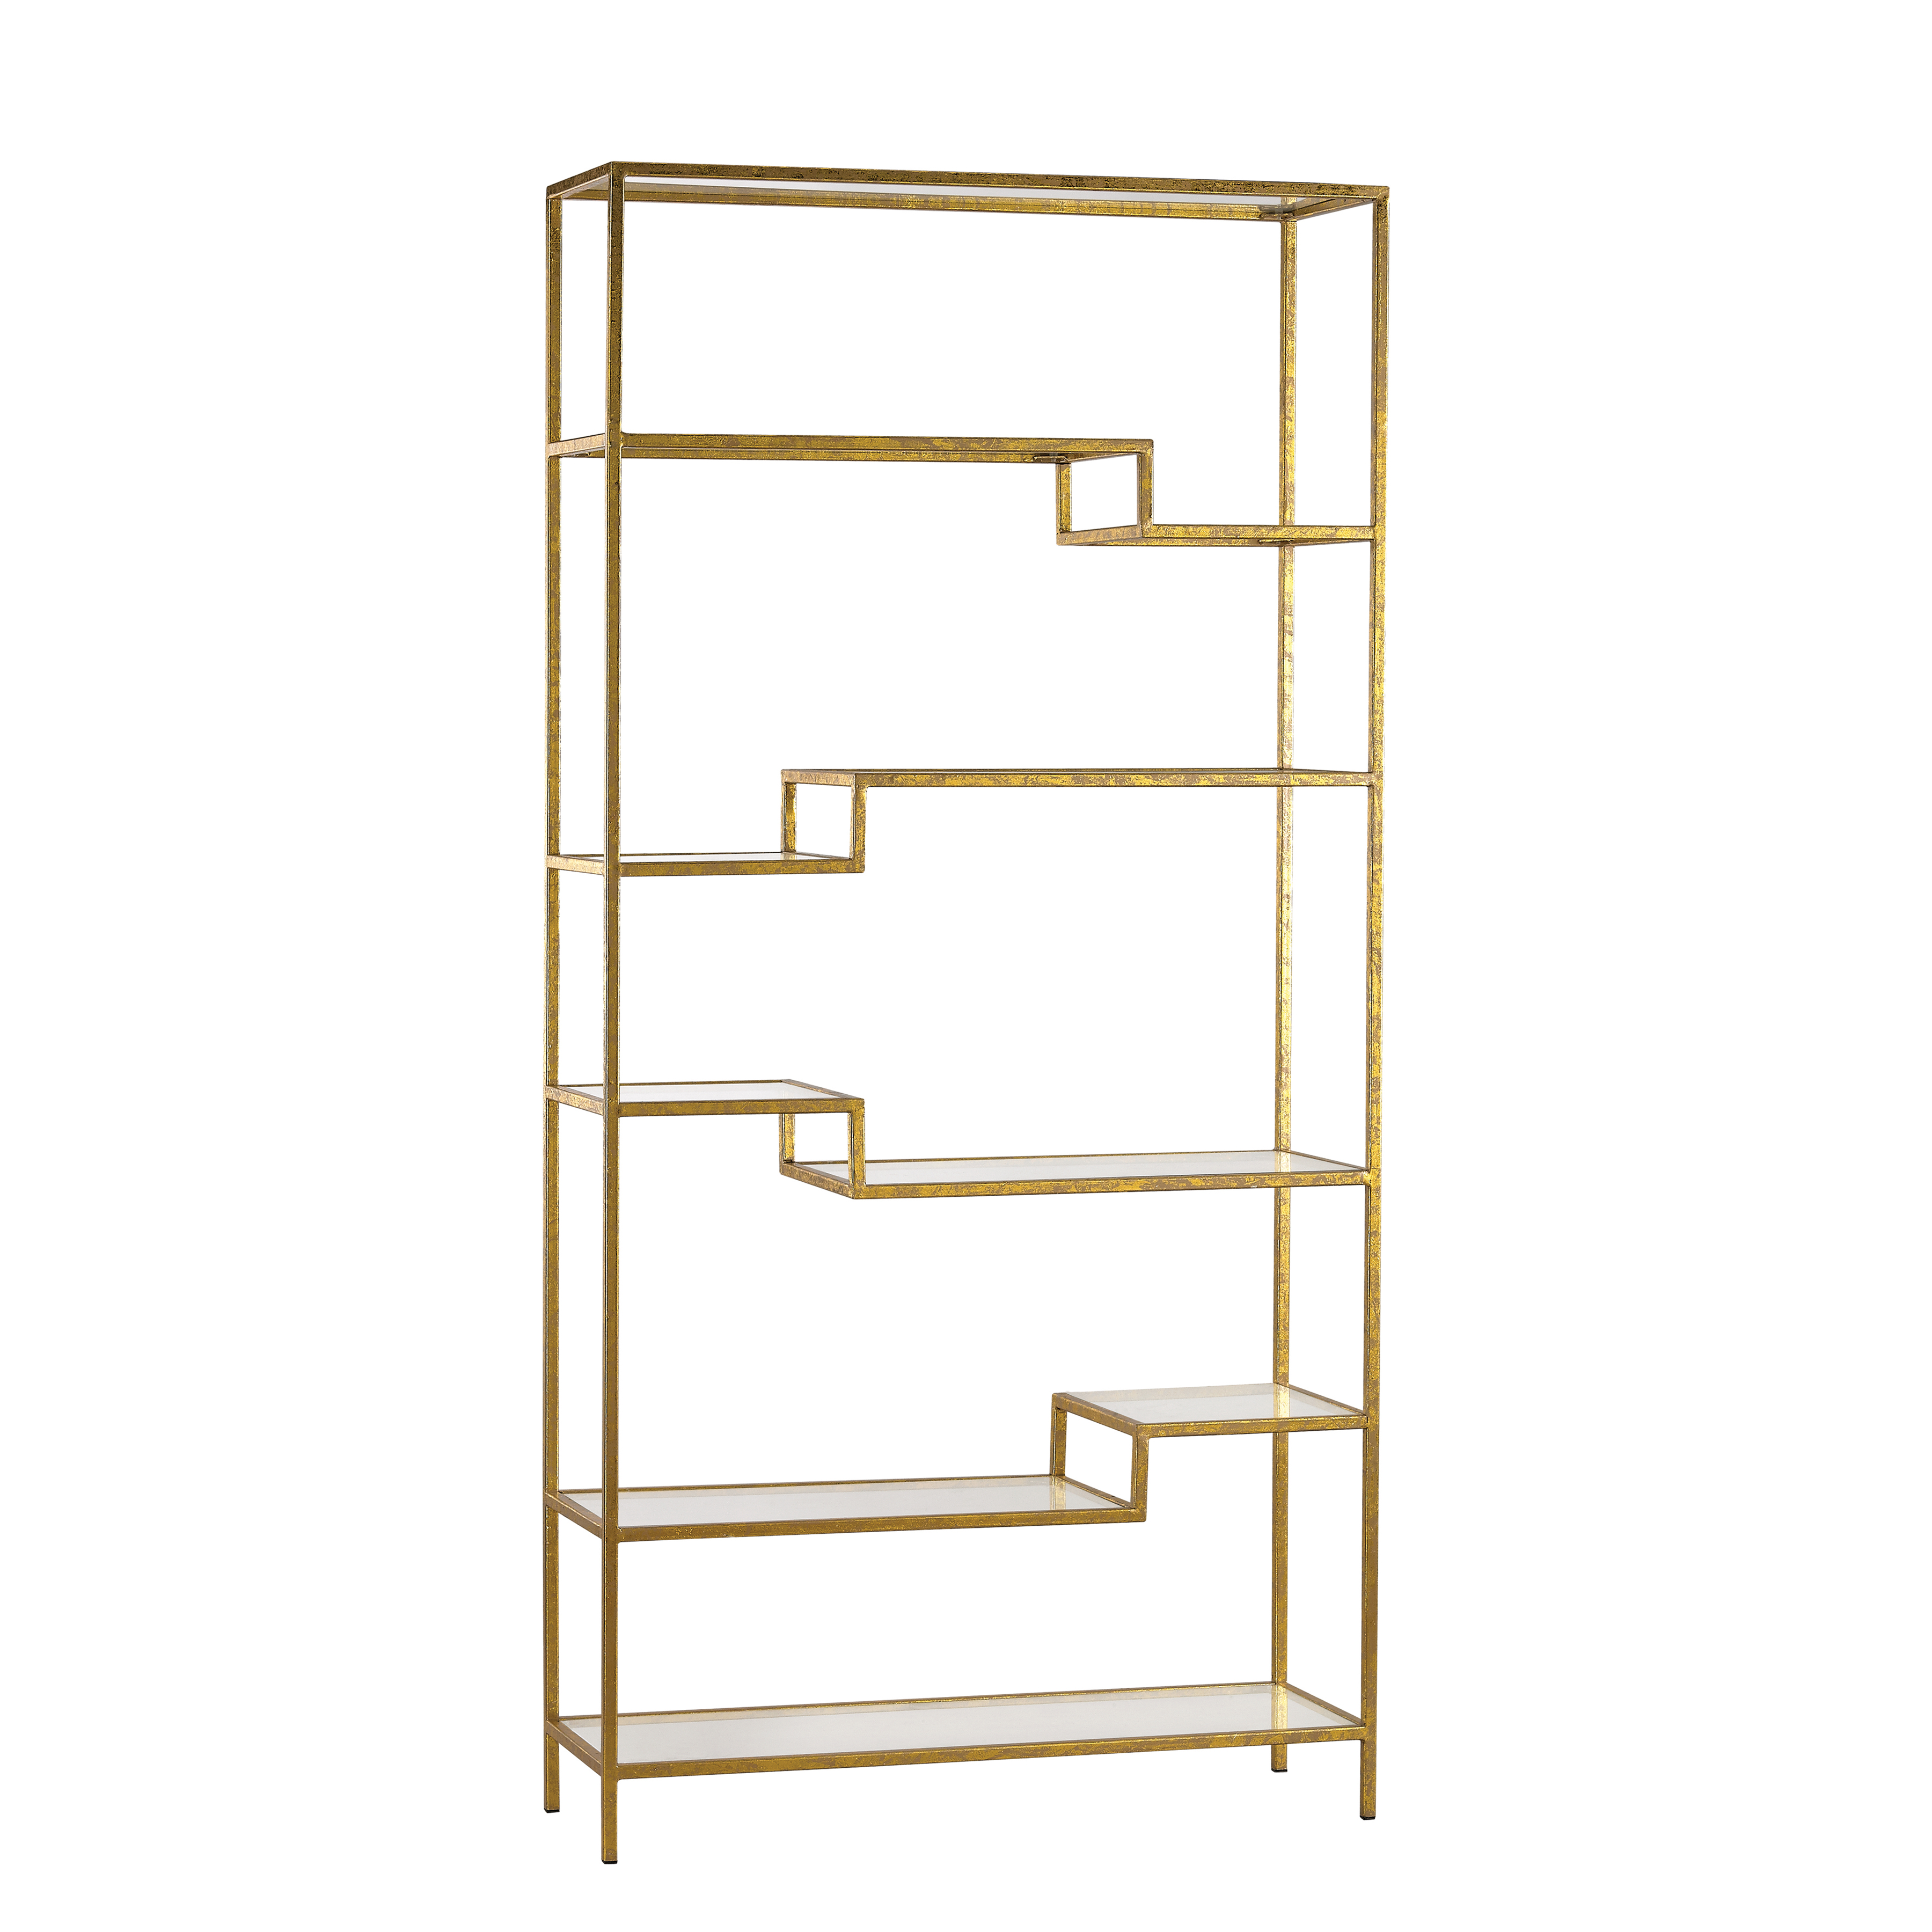 Vanguard Shelving Unit in Gold with Mirrored Surfaces | Elk Home